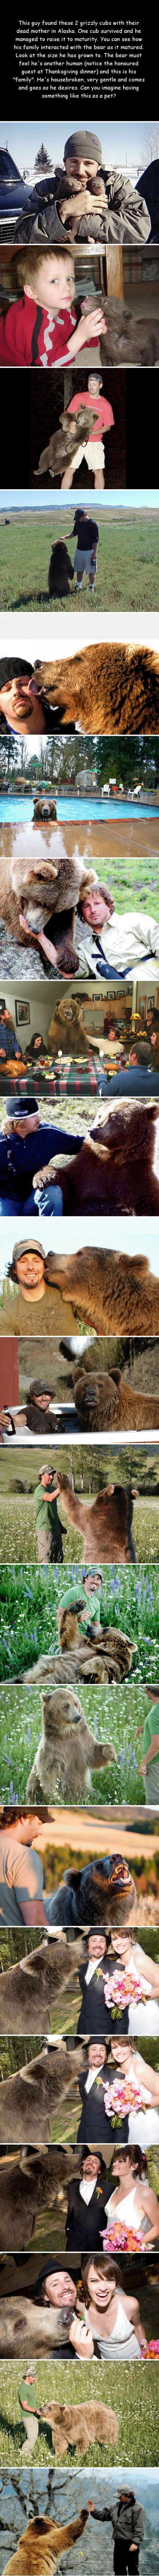 this guy found 2 grizzly cubs with their dead mother in alaska, what happens next will warm your heart, cool story